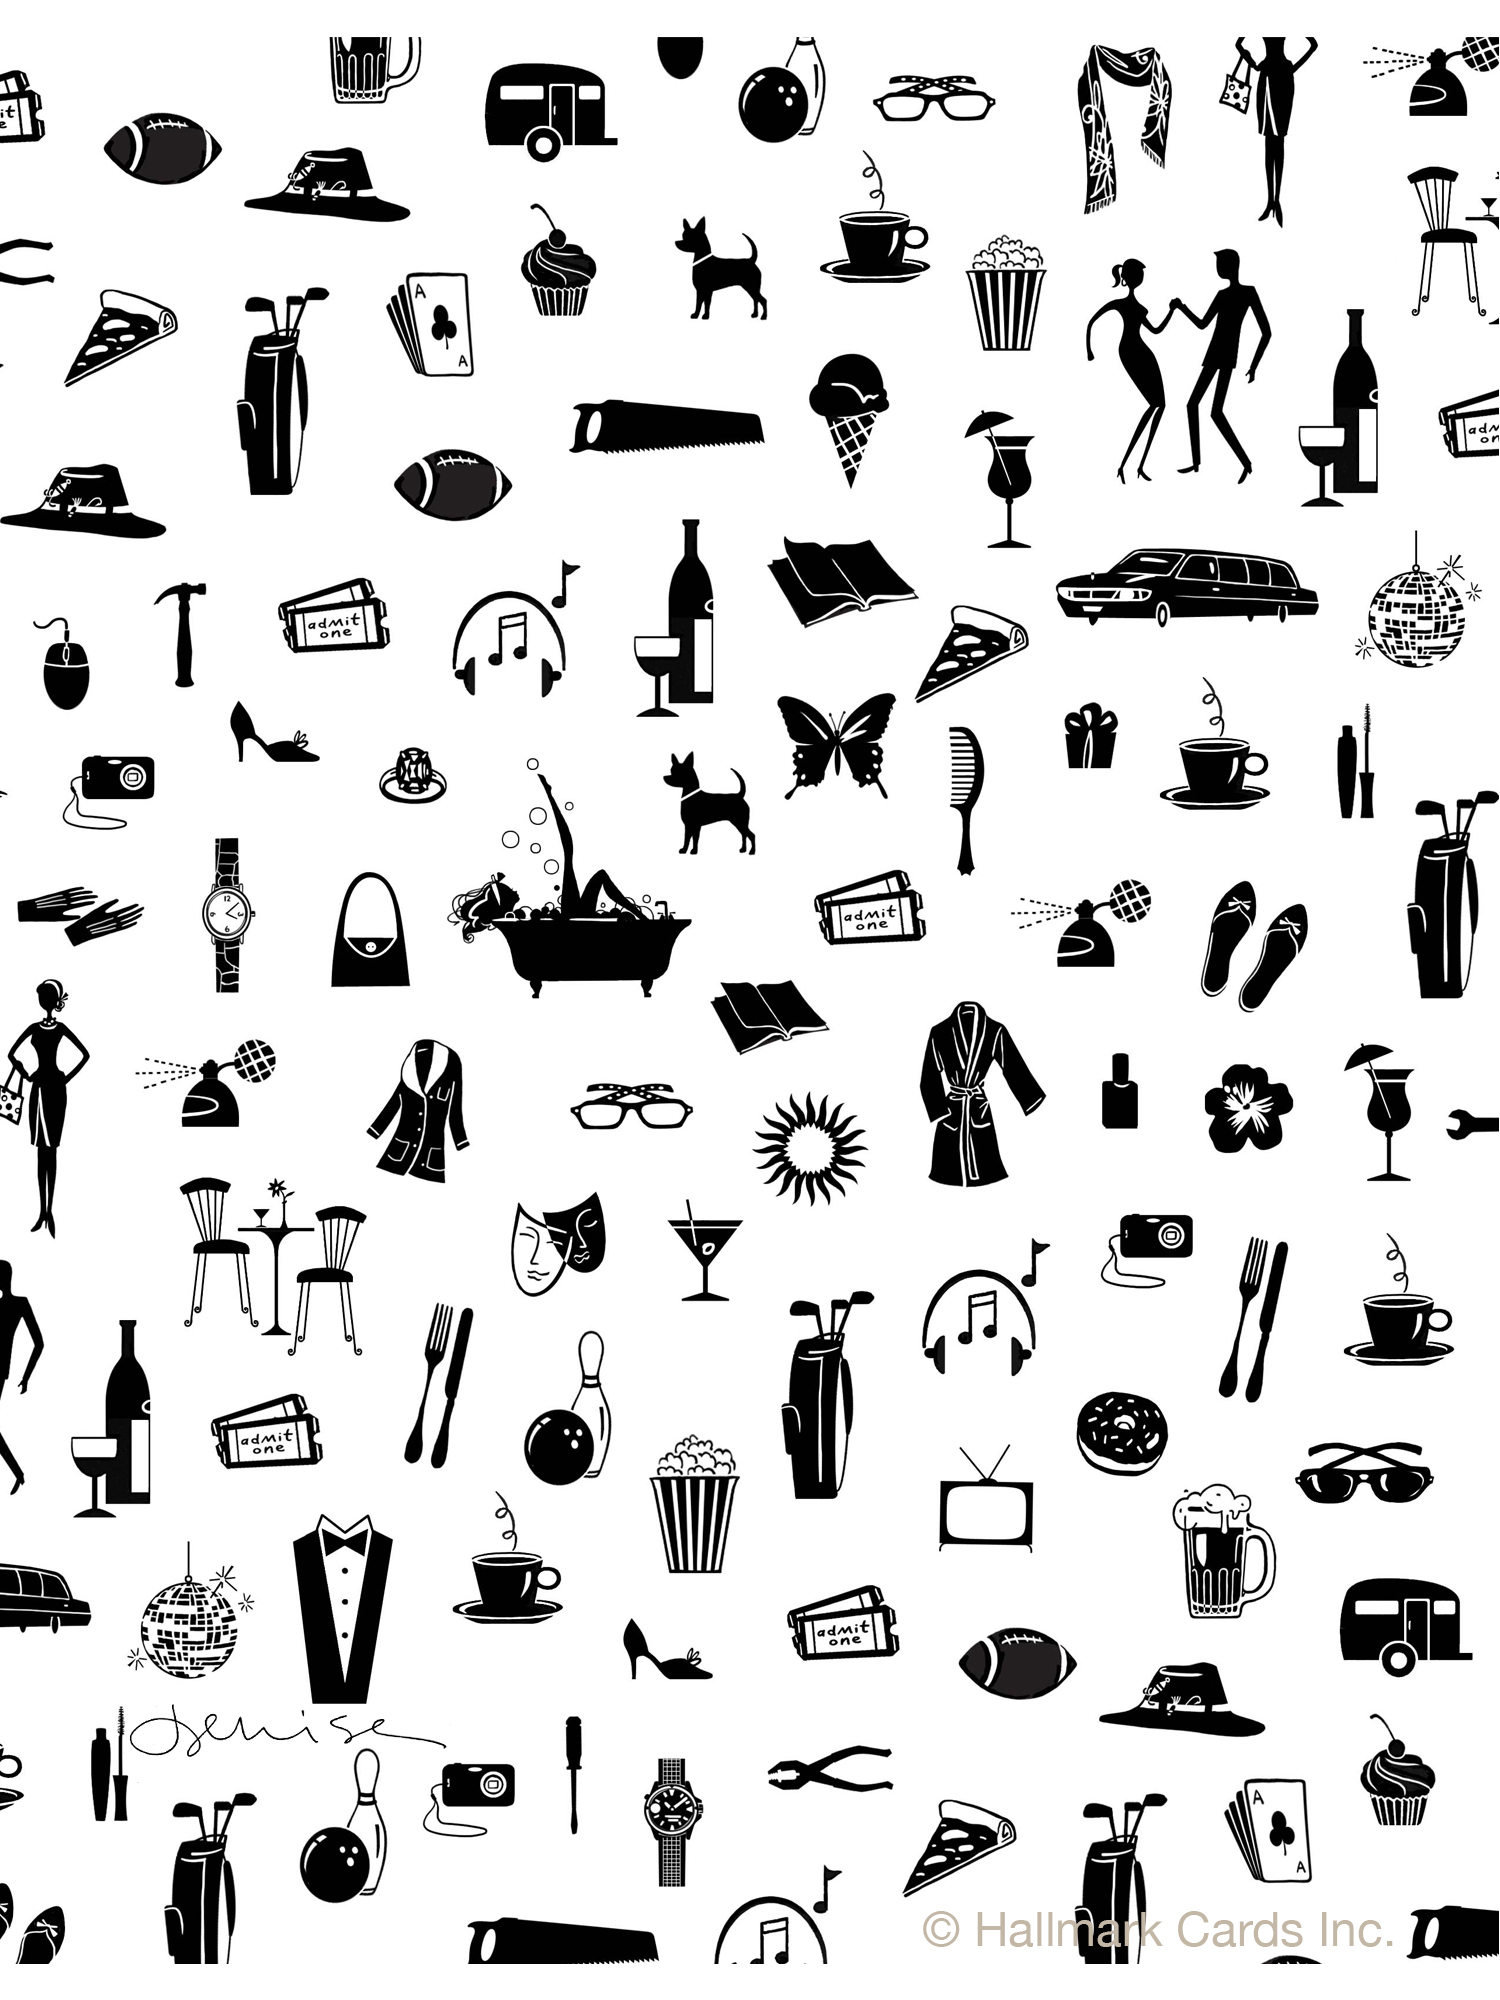 Lifestyle Icon Pattern Graphic.jpg